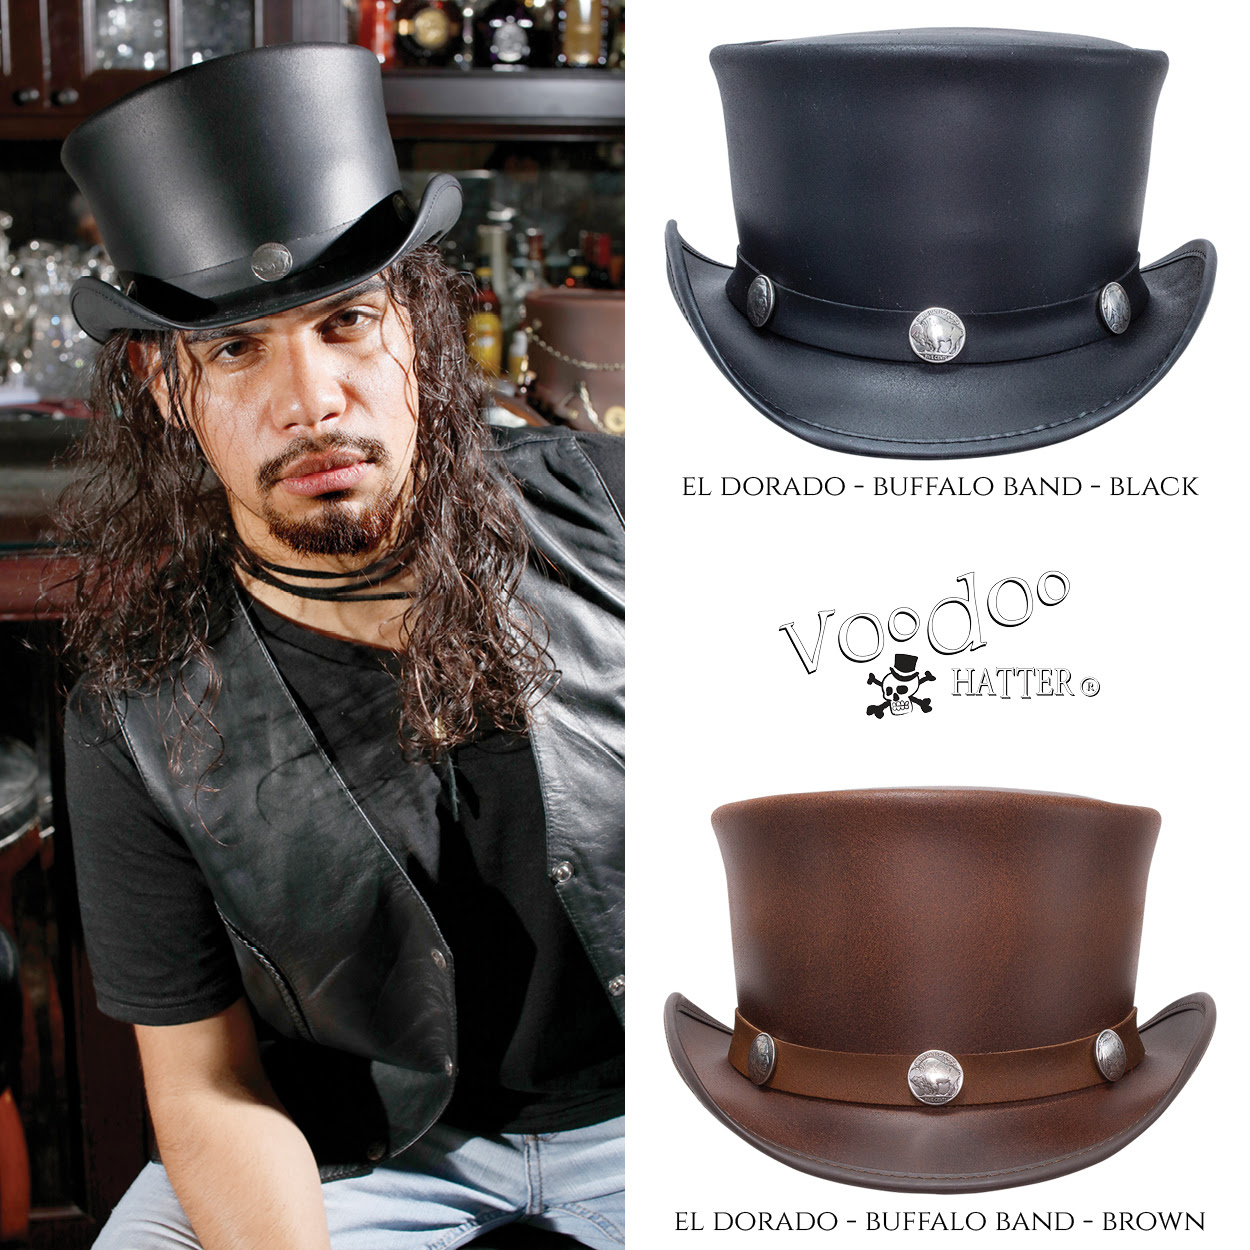 Voodoo El Dorado Buffalo Band Hats